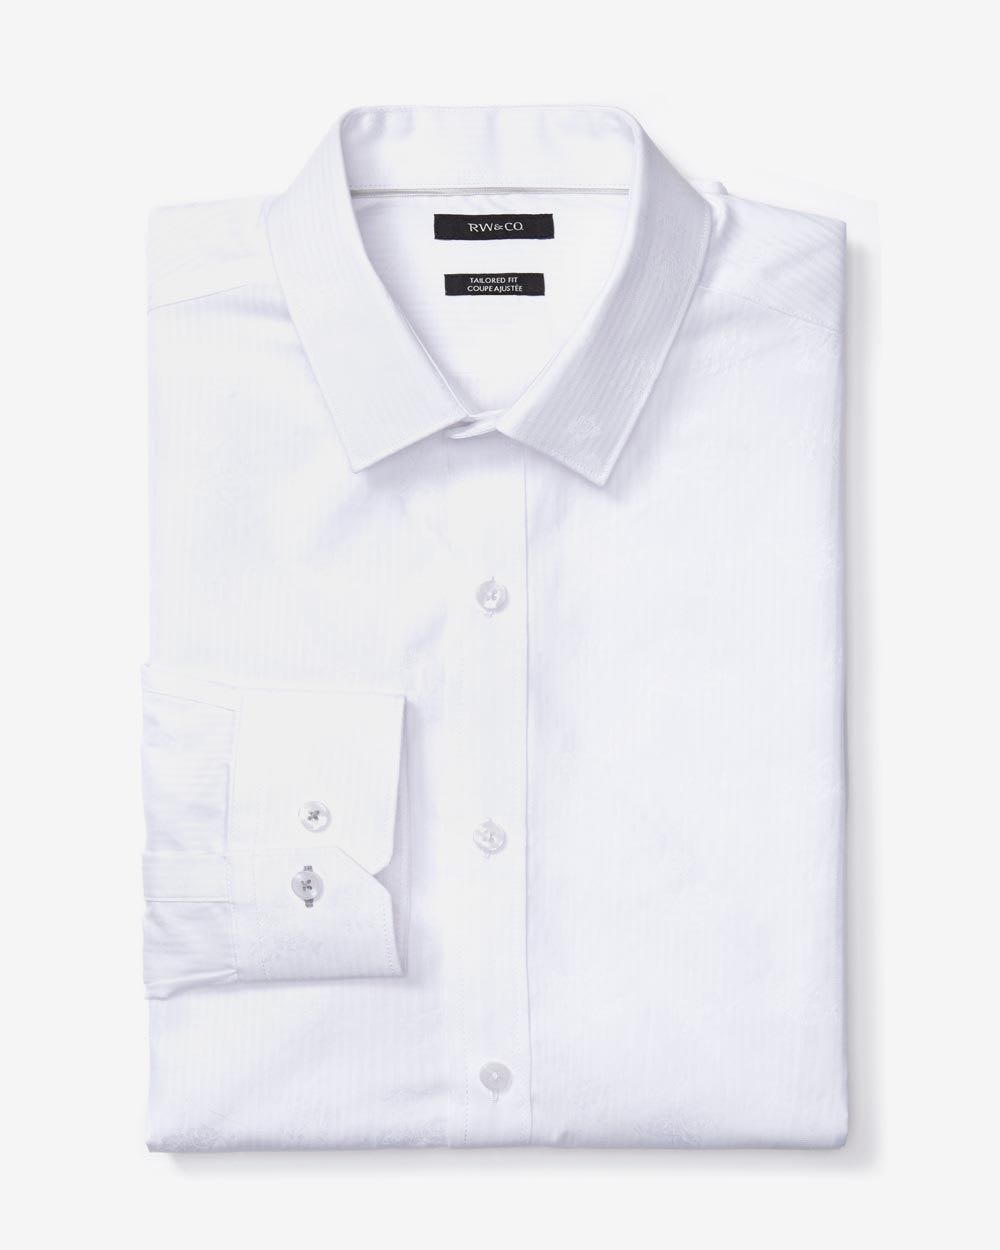 Tailored fit white jacquard dress shirt rw co for Tailoring a dress shirt